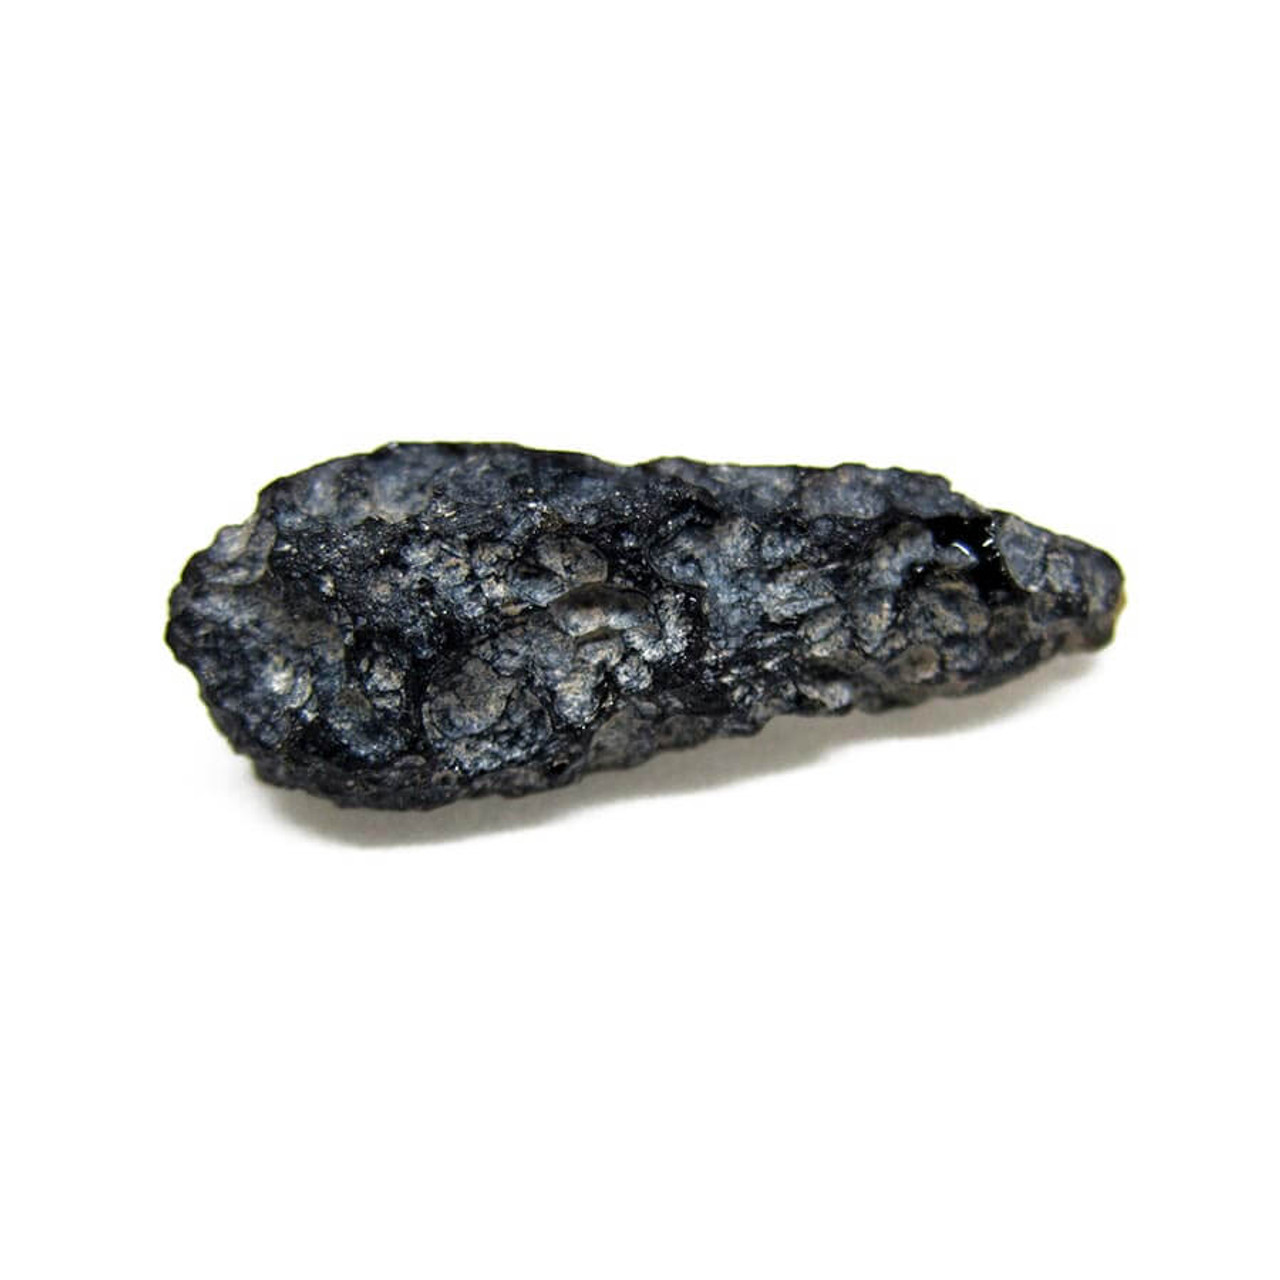 TEKTITE IMPACT STONE FROM SPACE